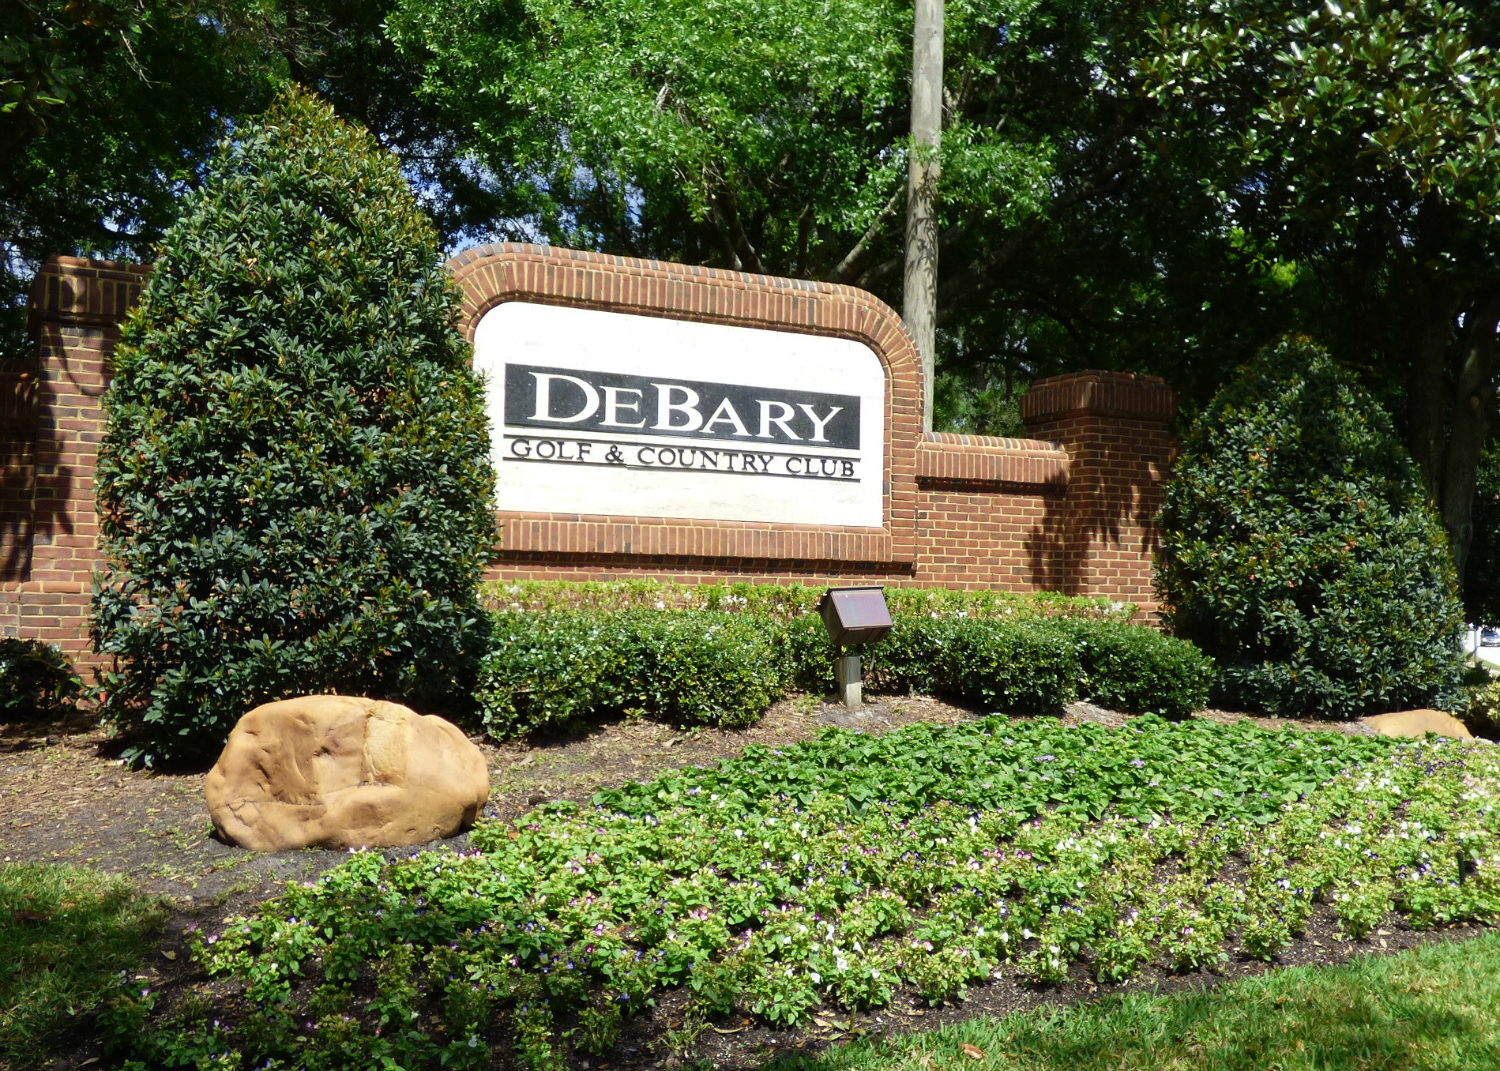 Debary Golf and Country Club Entrance